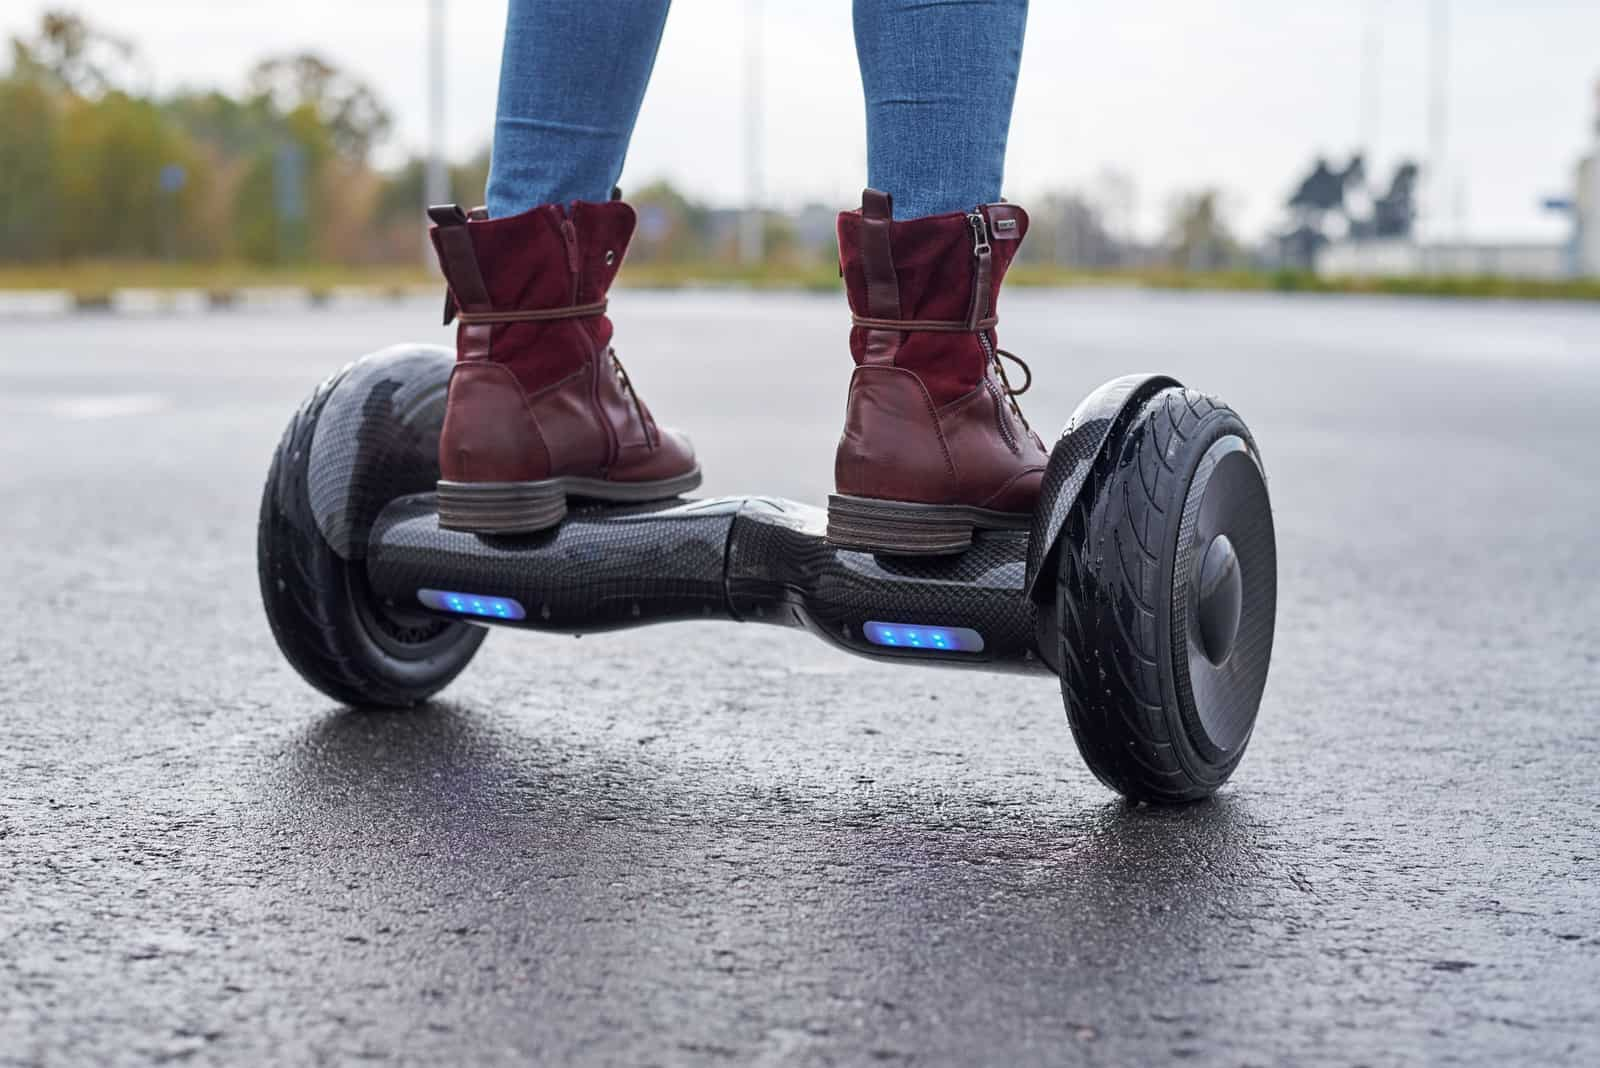 How long does it take to charge a hoverboard? 12